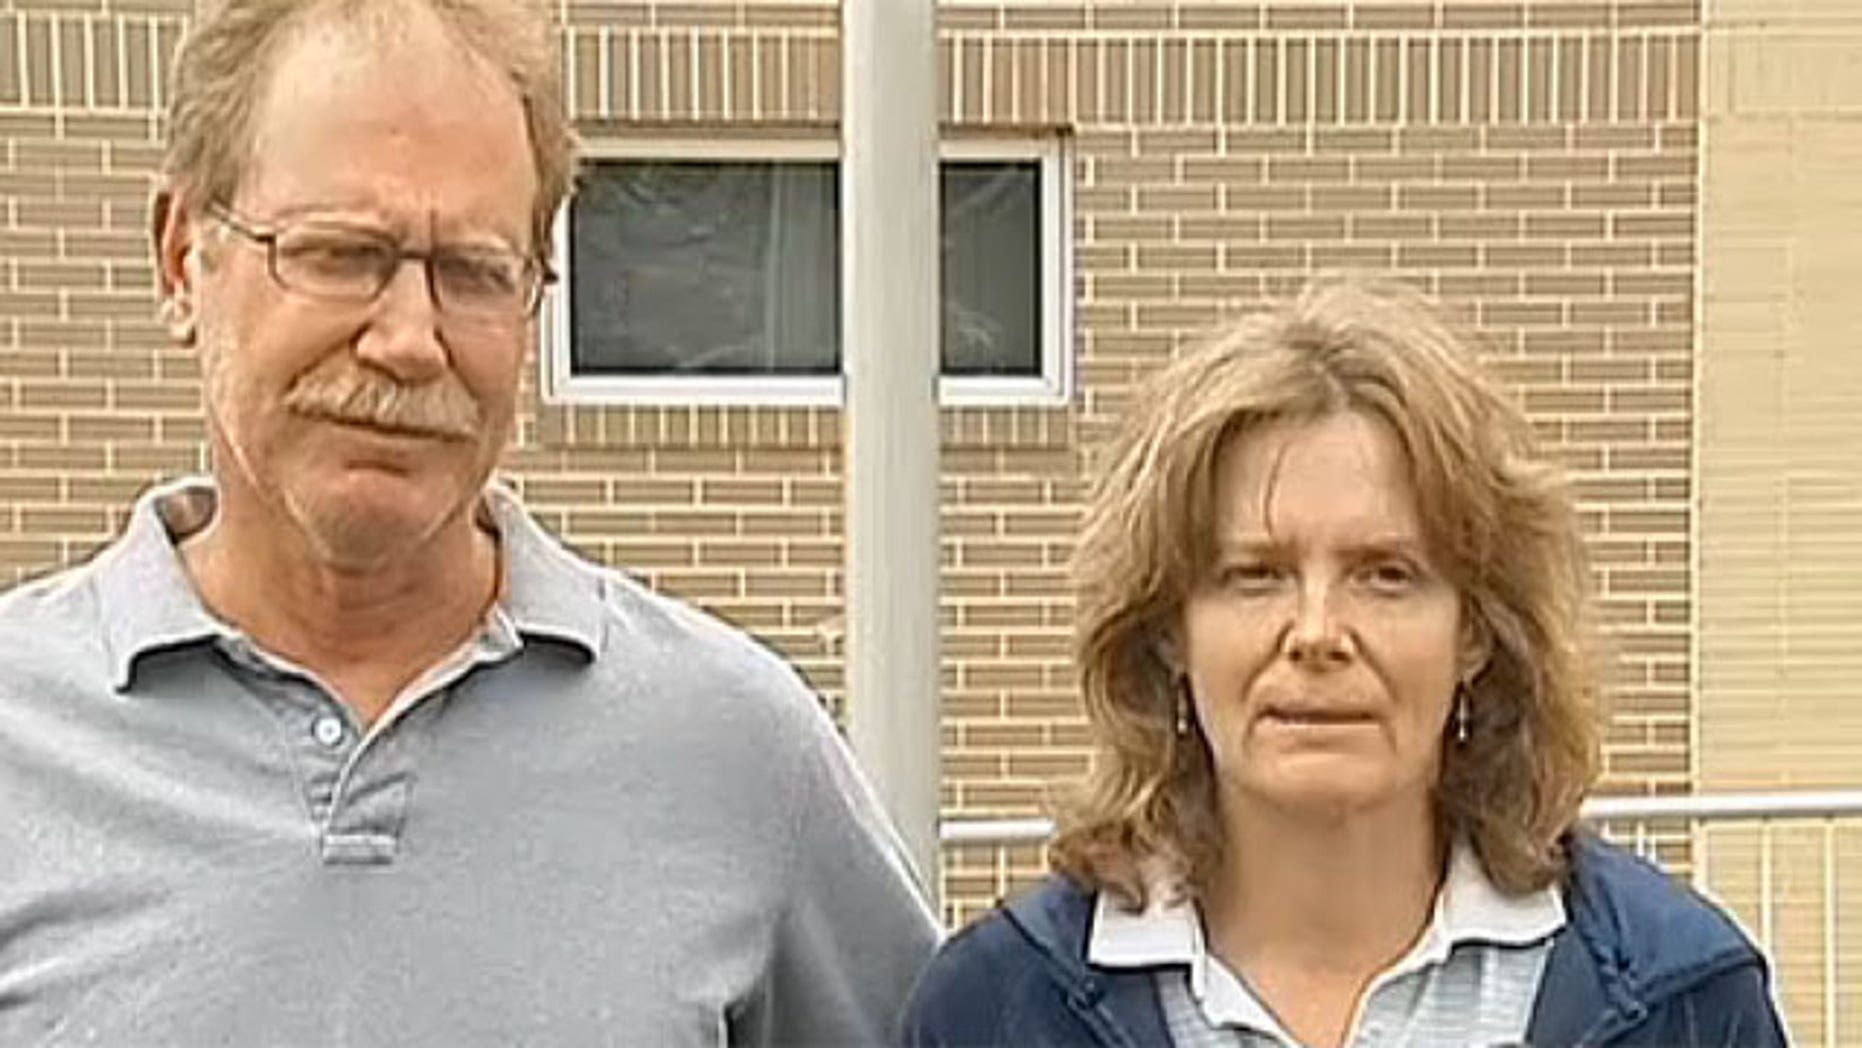 May 20, 2013: The parents of missing student Matt Royer plead for his safe return at a news conference.